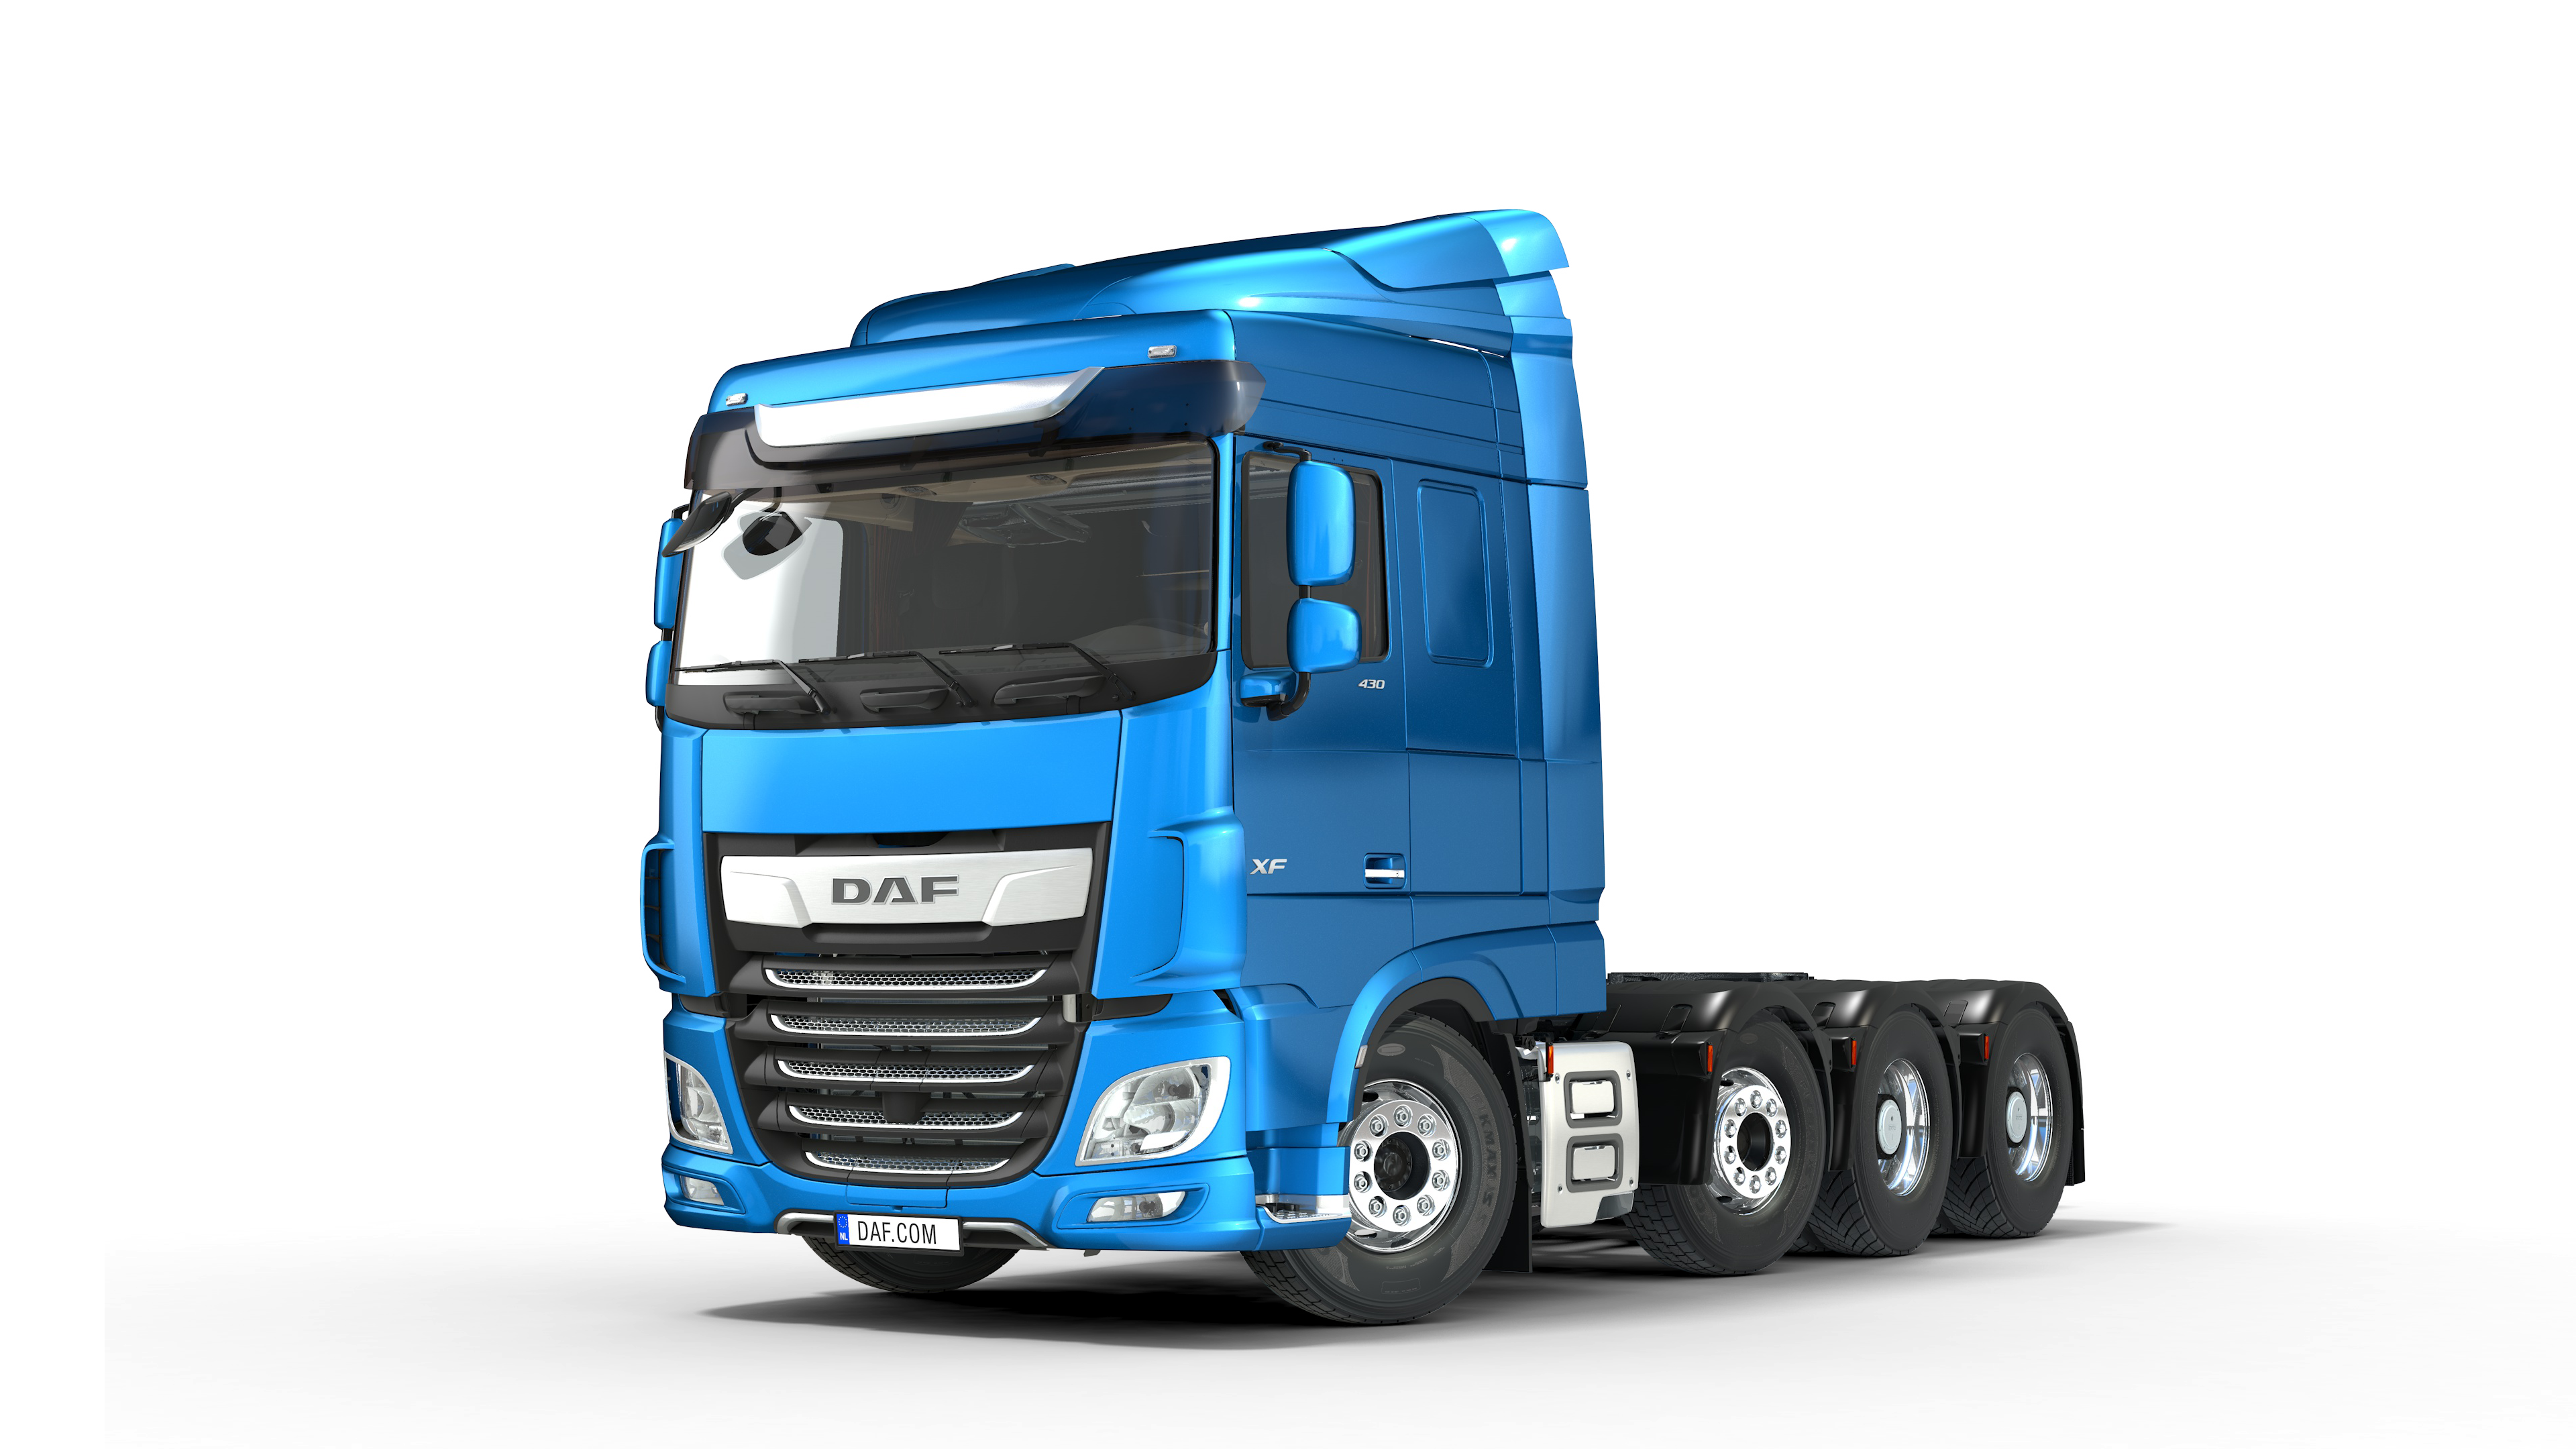 DAF XF 480 FT Specifications & Technical Data (2019-2019